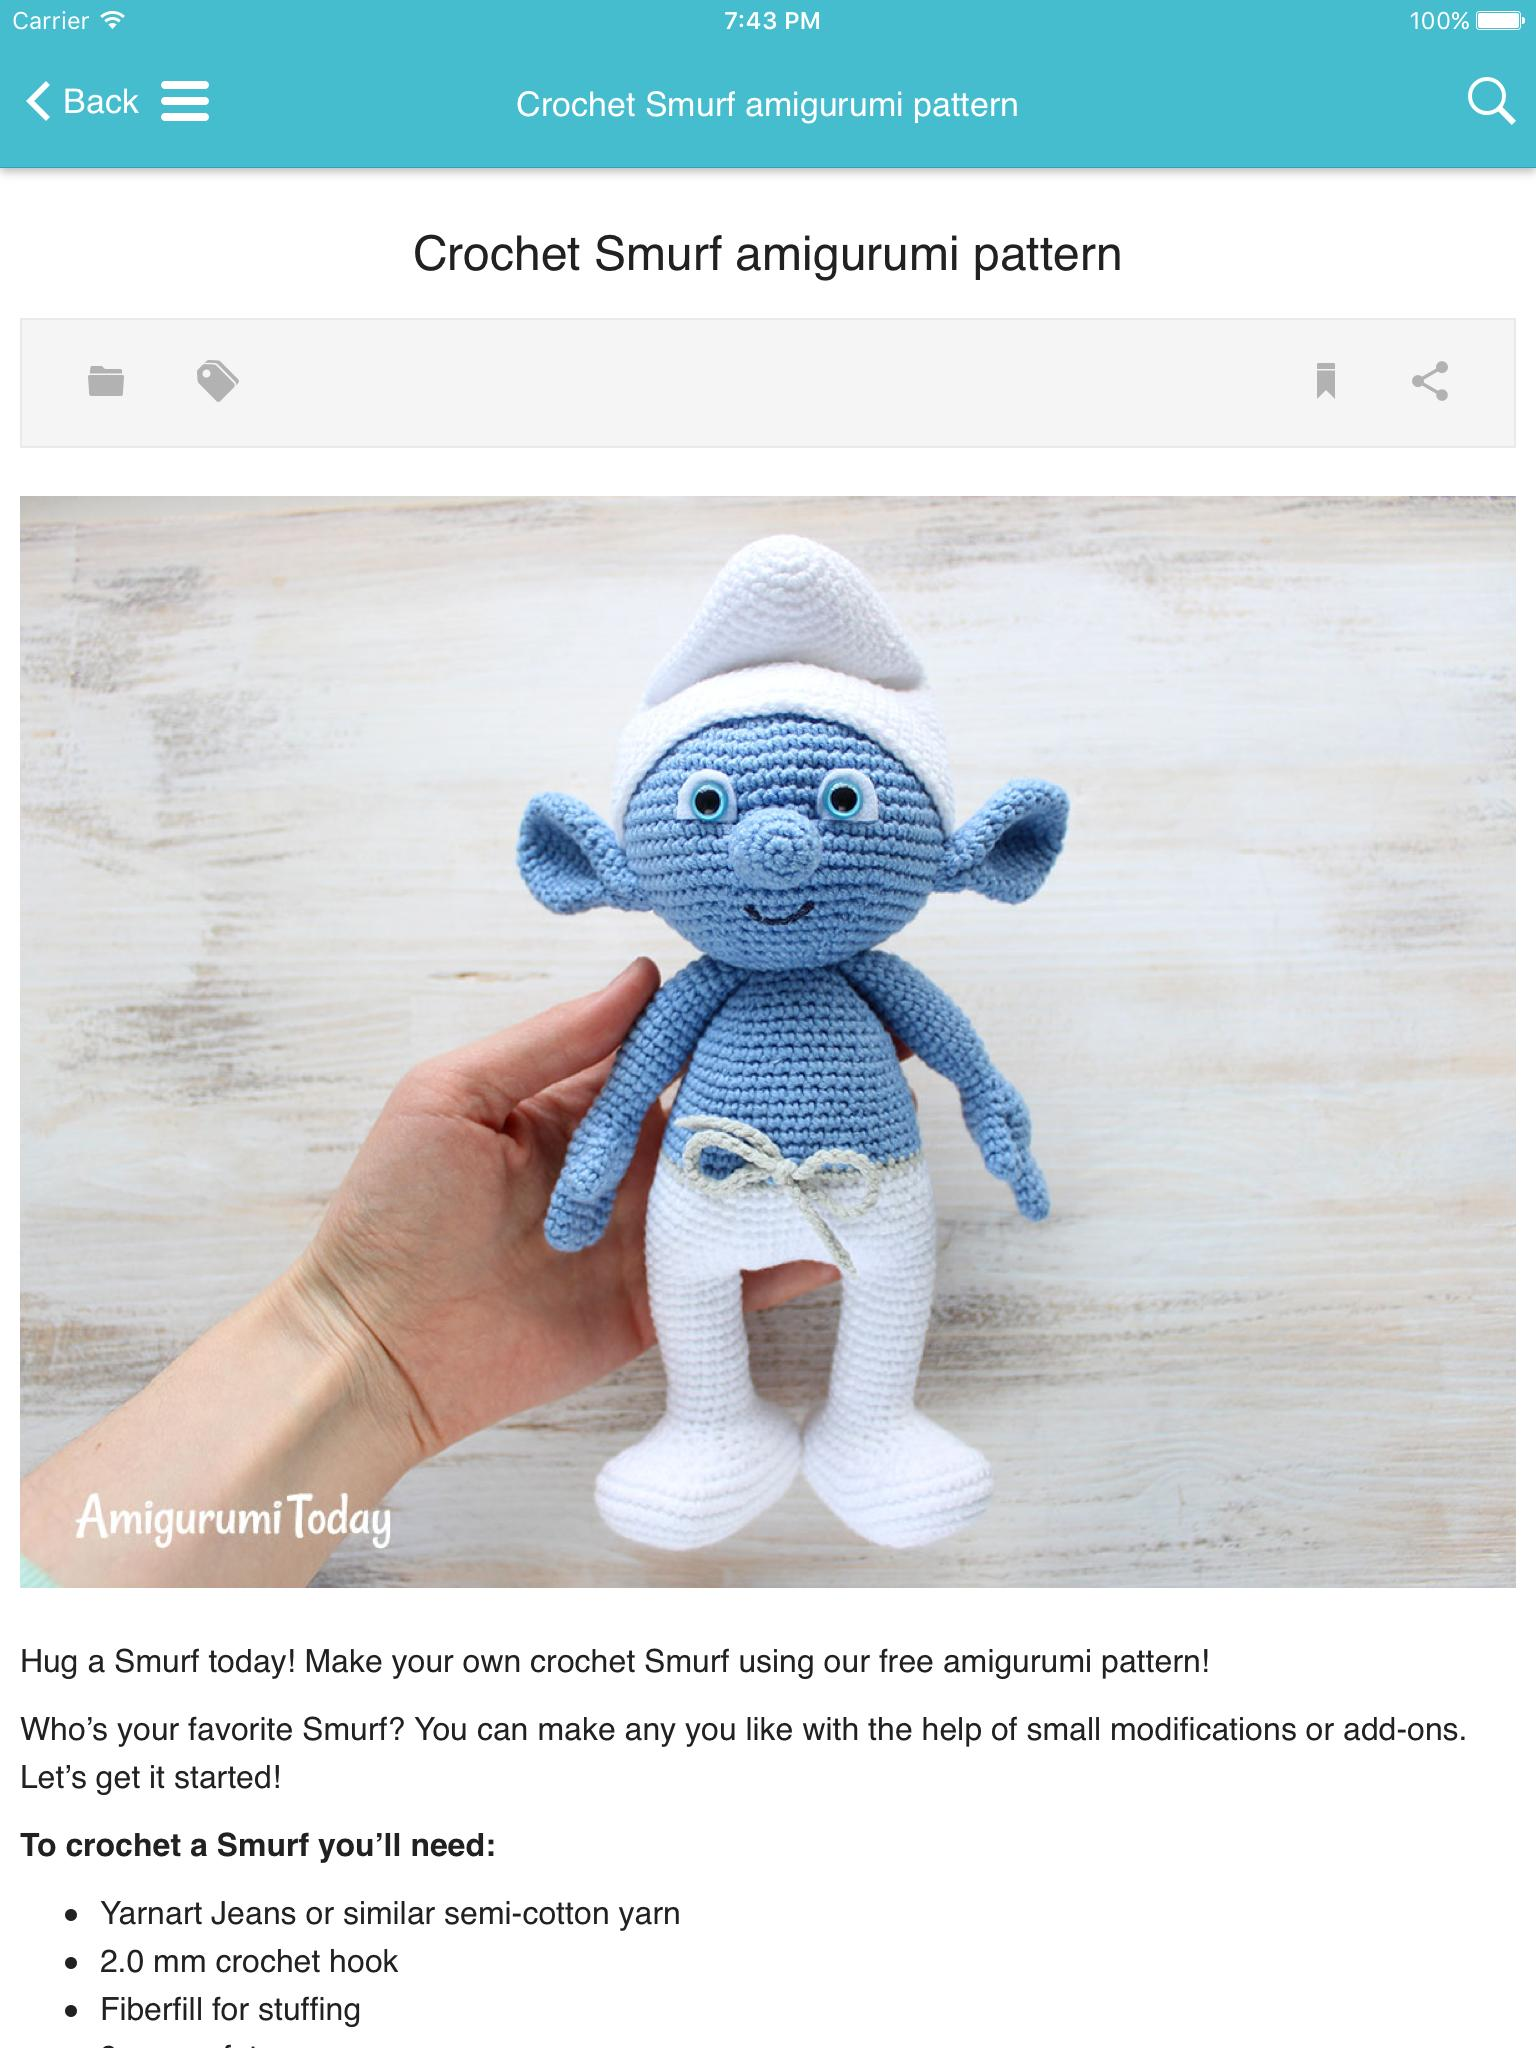 Amigurumi Today - Free amigurumi patterns and amigurumi tutorials | 2048x1536